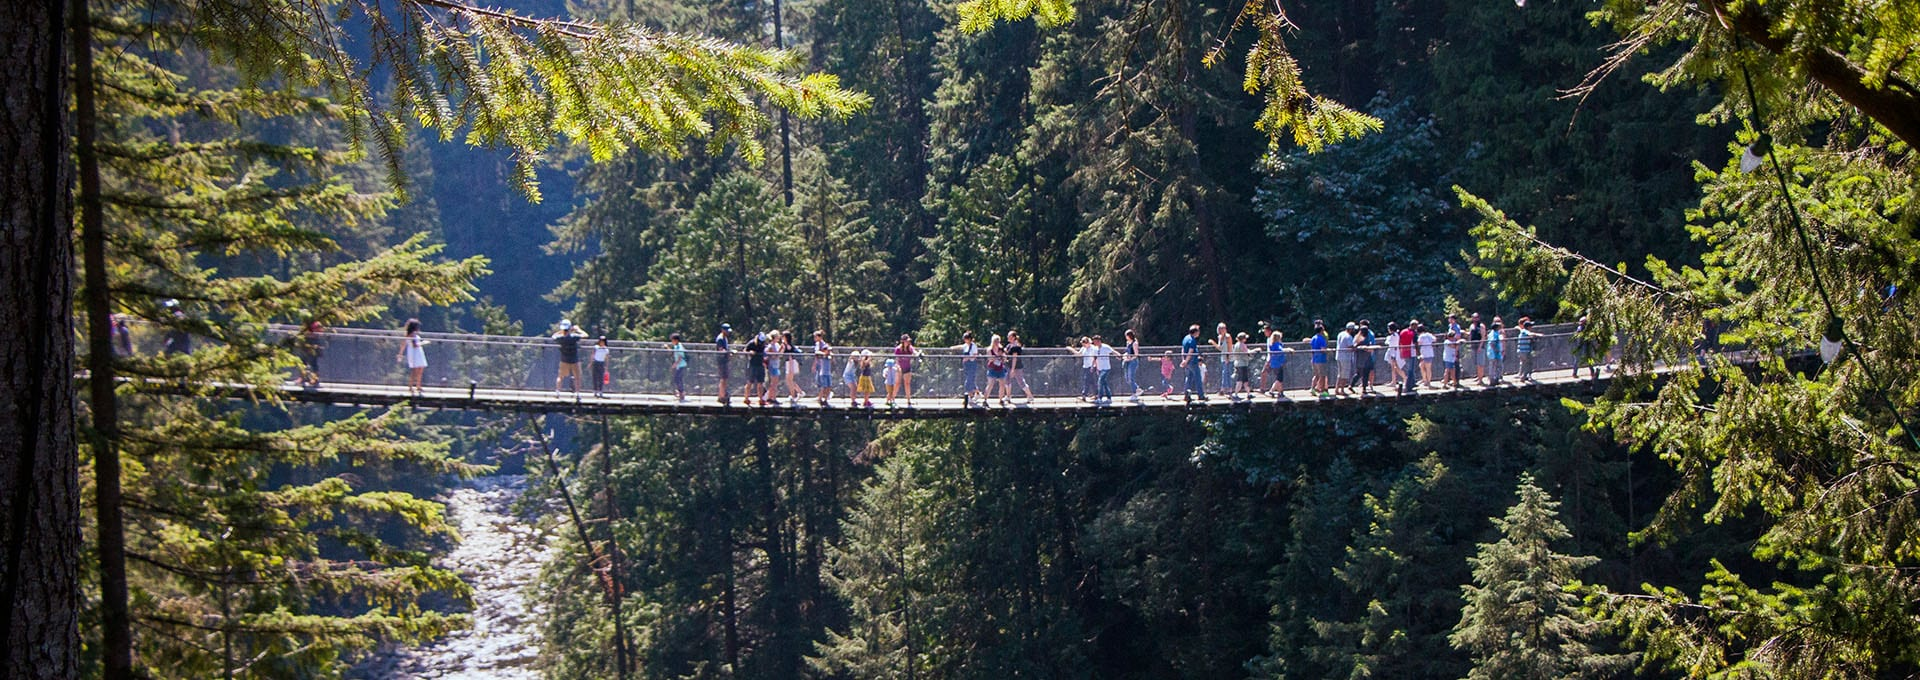 Students at Capilano Park, Alexander College